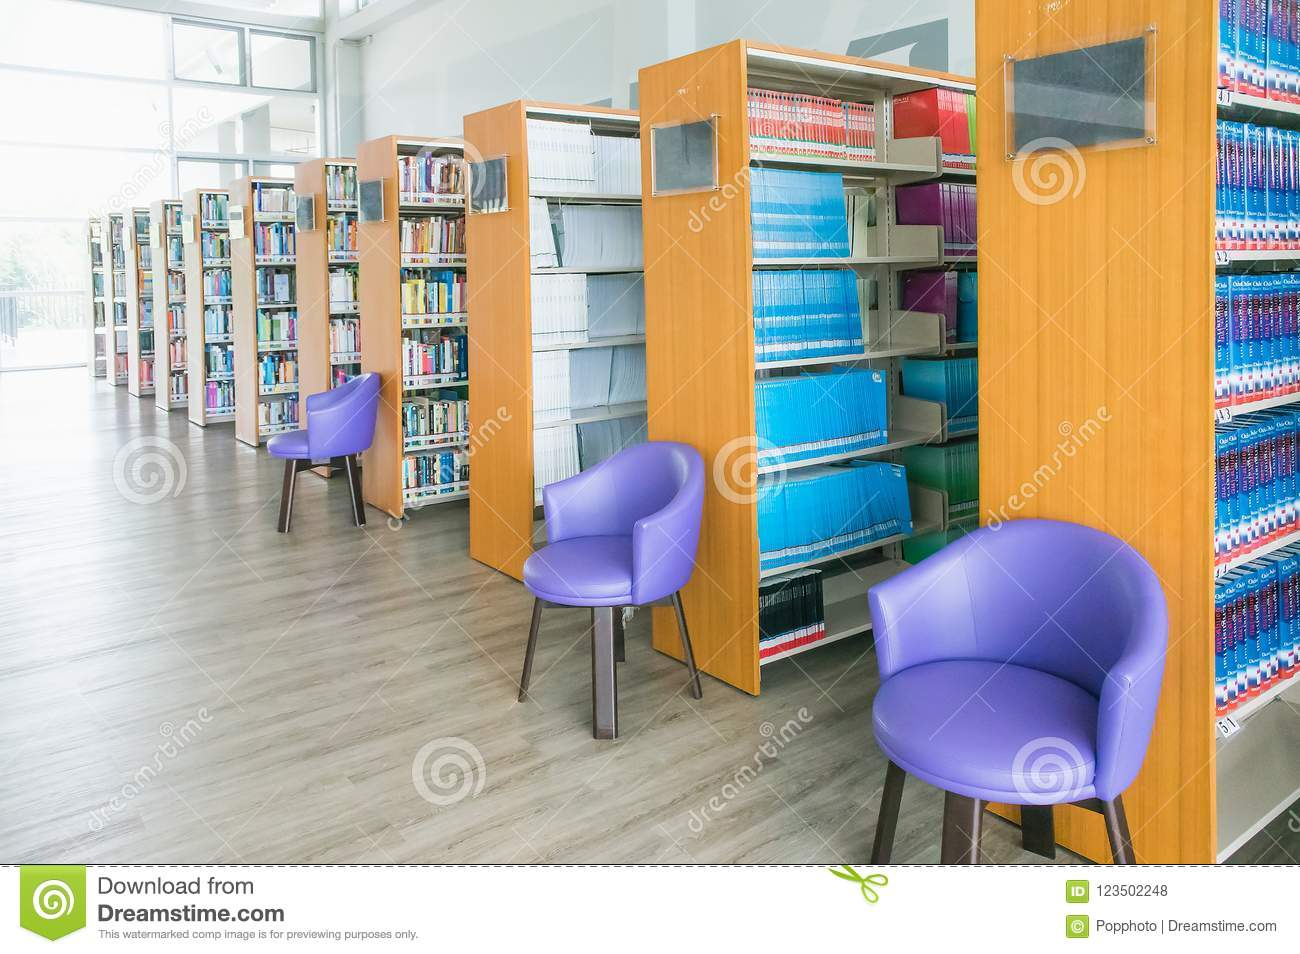 The Books On Bookshelf And Purple Chairs In Interior Library Of University